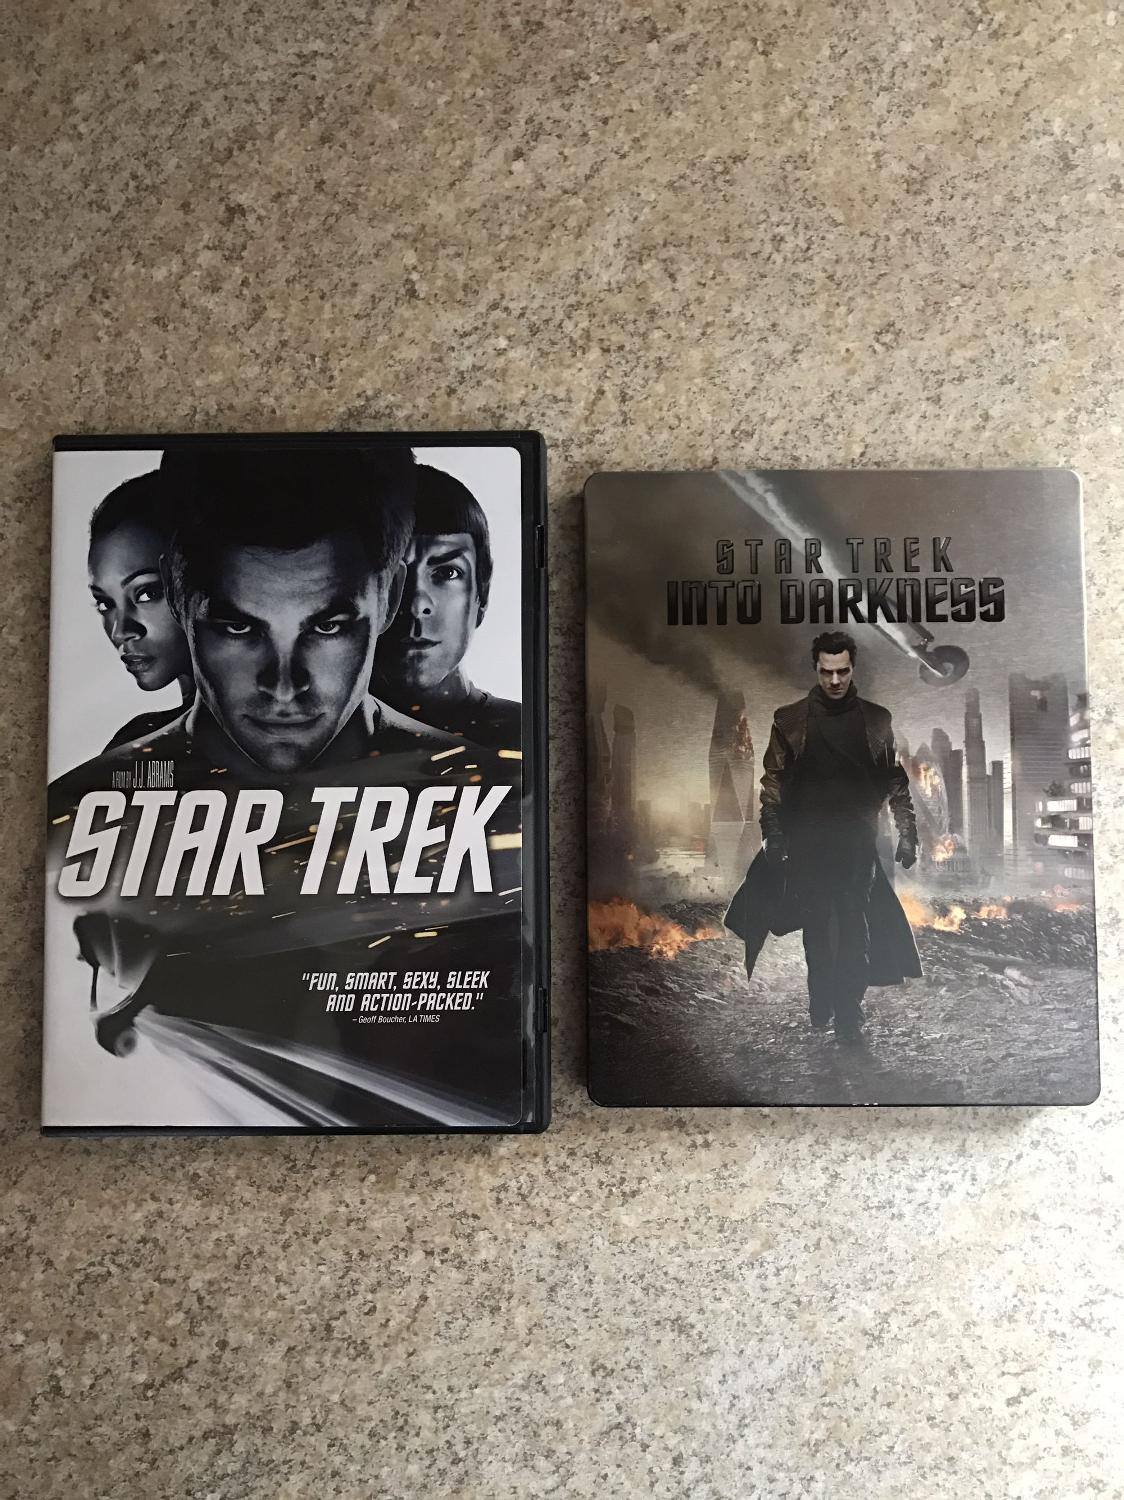 Best Star Trek Dvd 39 S For Sale In Minot North Dakota For 2018